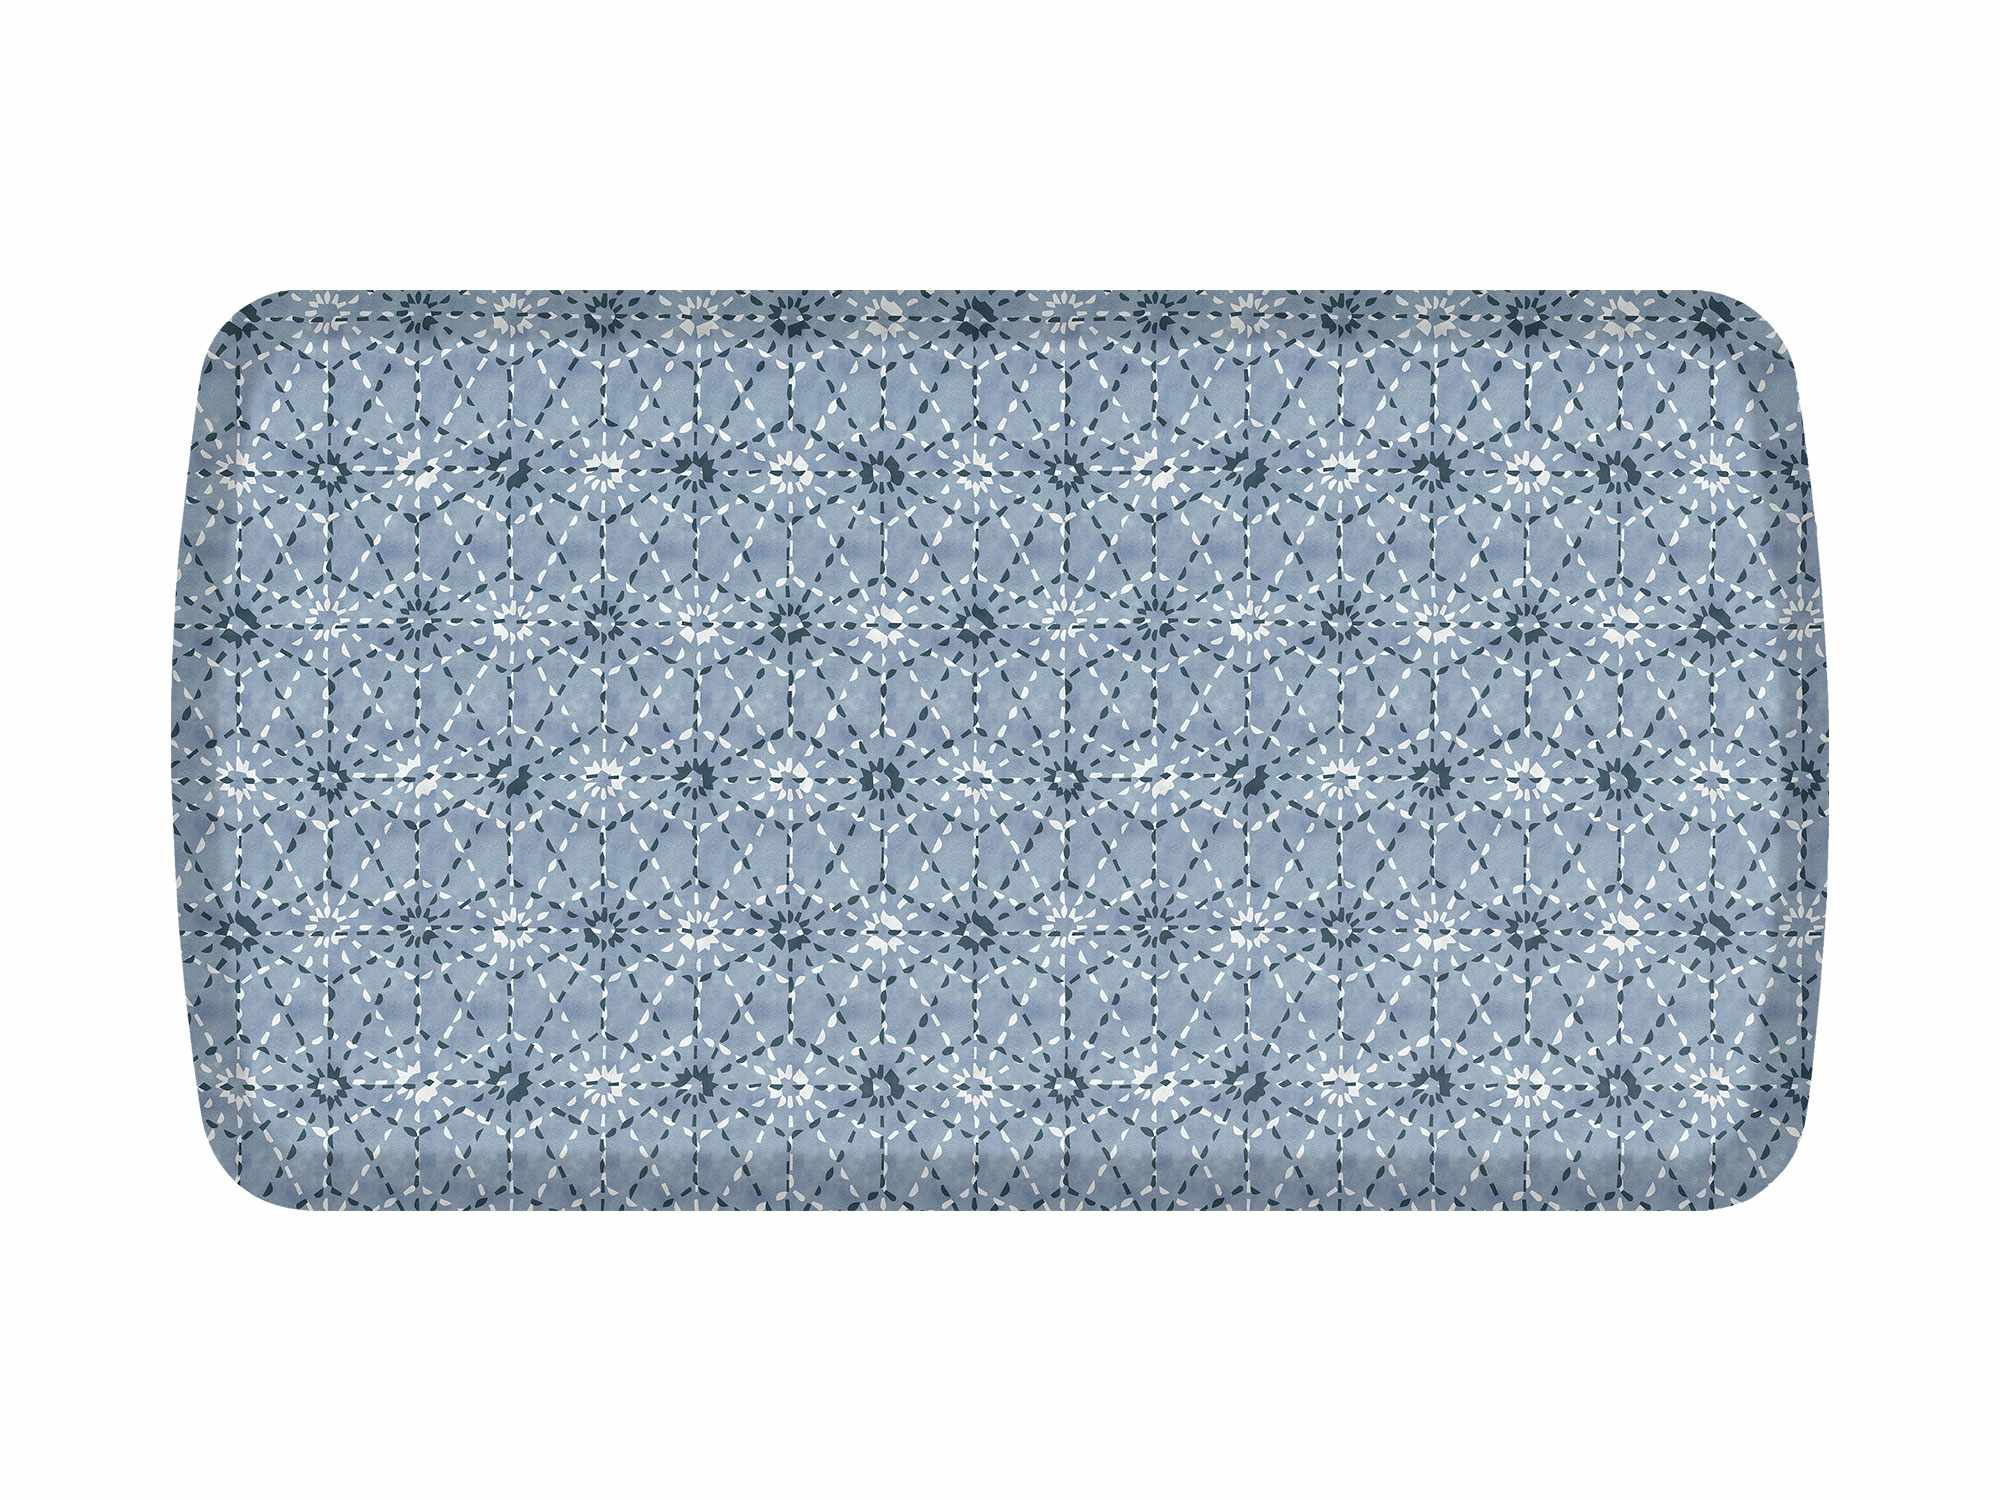 padded kitchen mats grey blinds mat for back pain anti fatigue gel floor